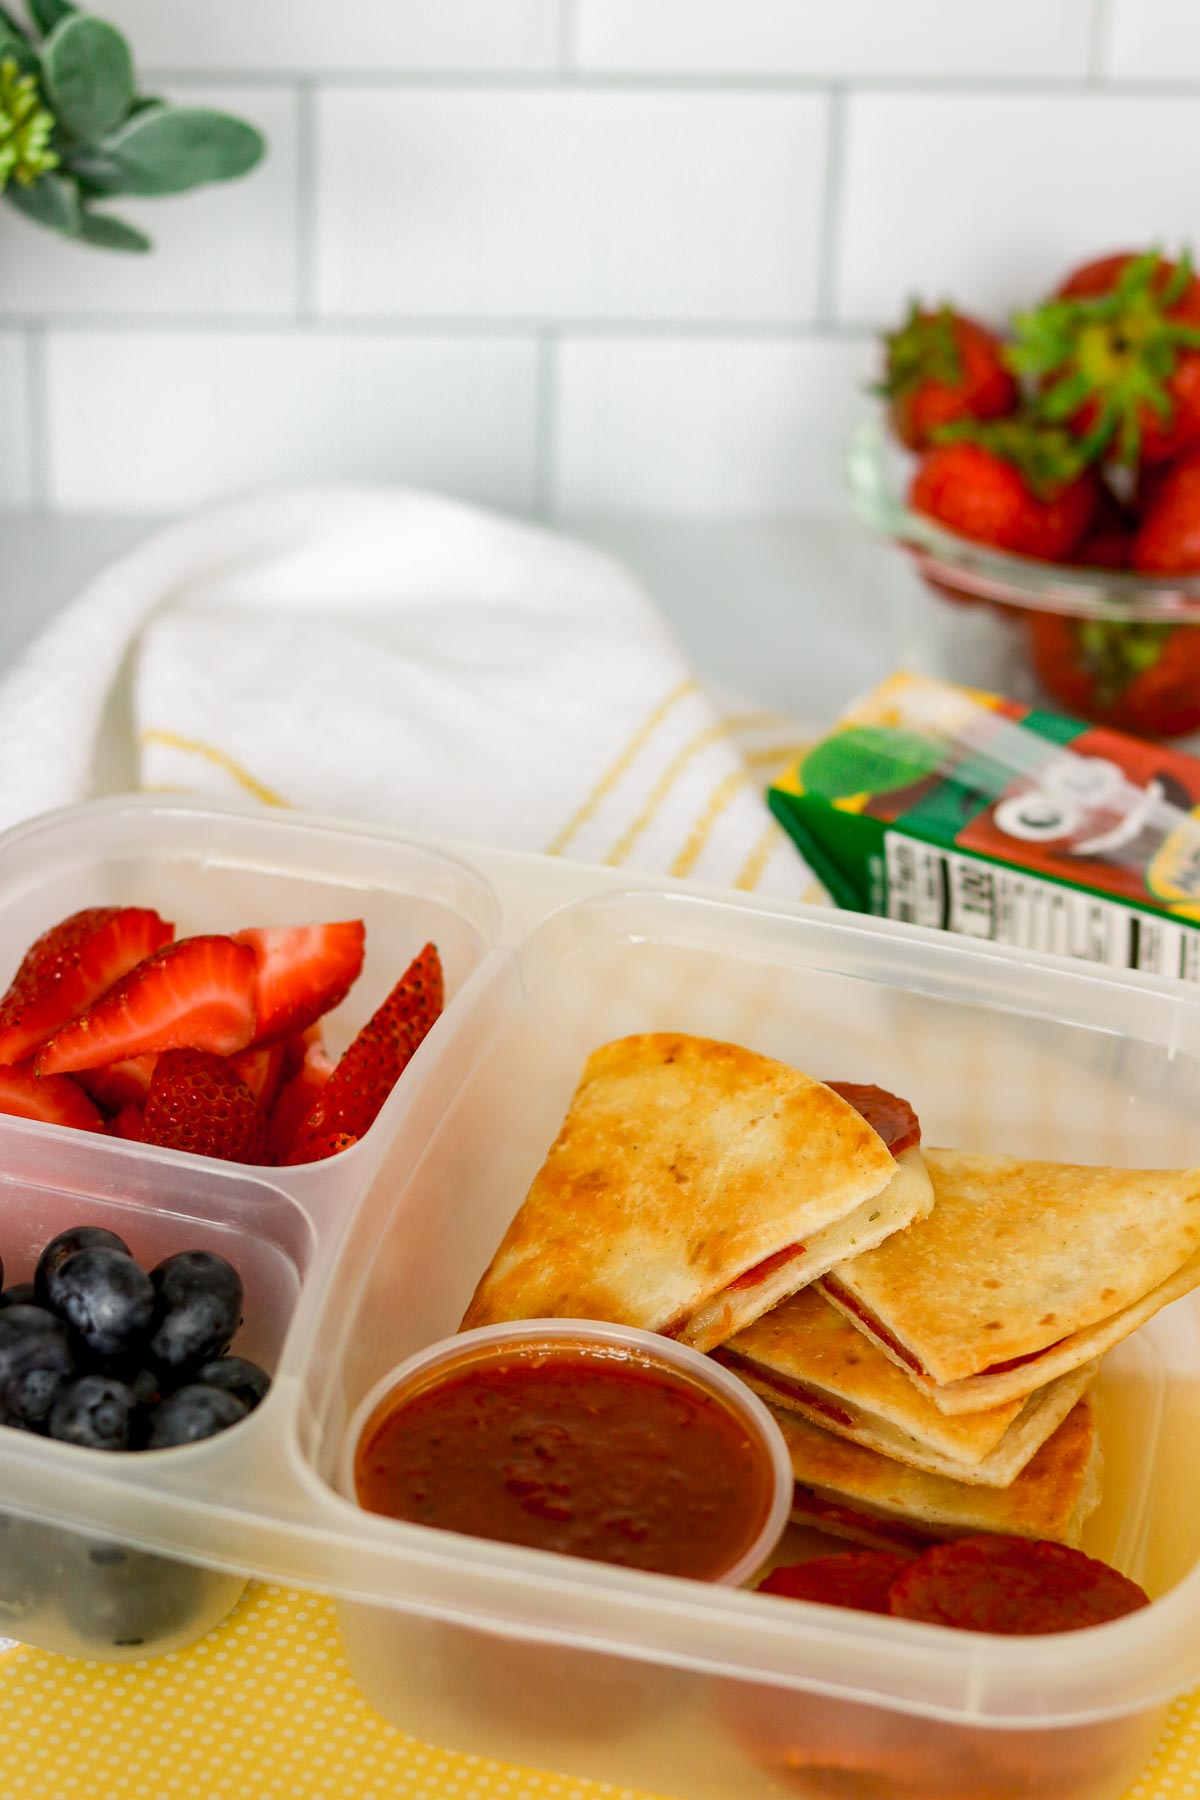 Pepperoni pizzadillas packed for a kid's lunch in a bento box with berries.